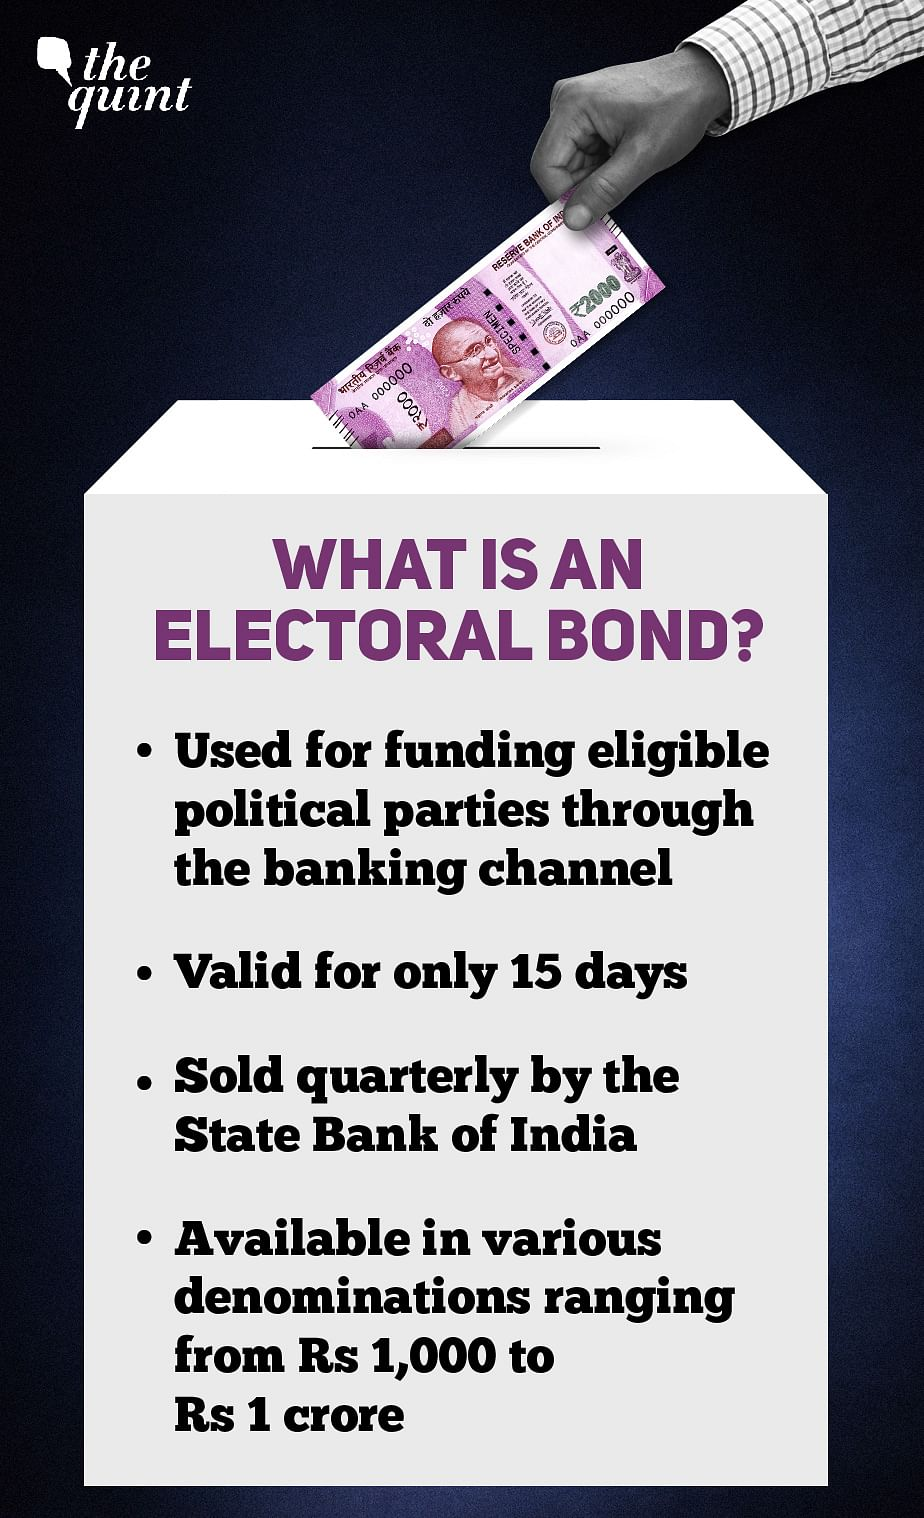 Exclusive: Will Non-Serialised Electoral Bonds Enable Corruption?